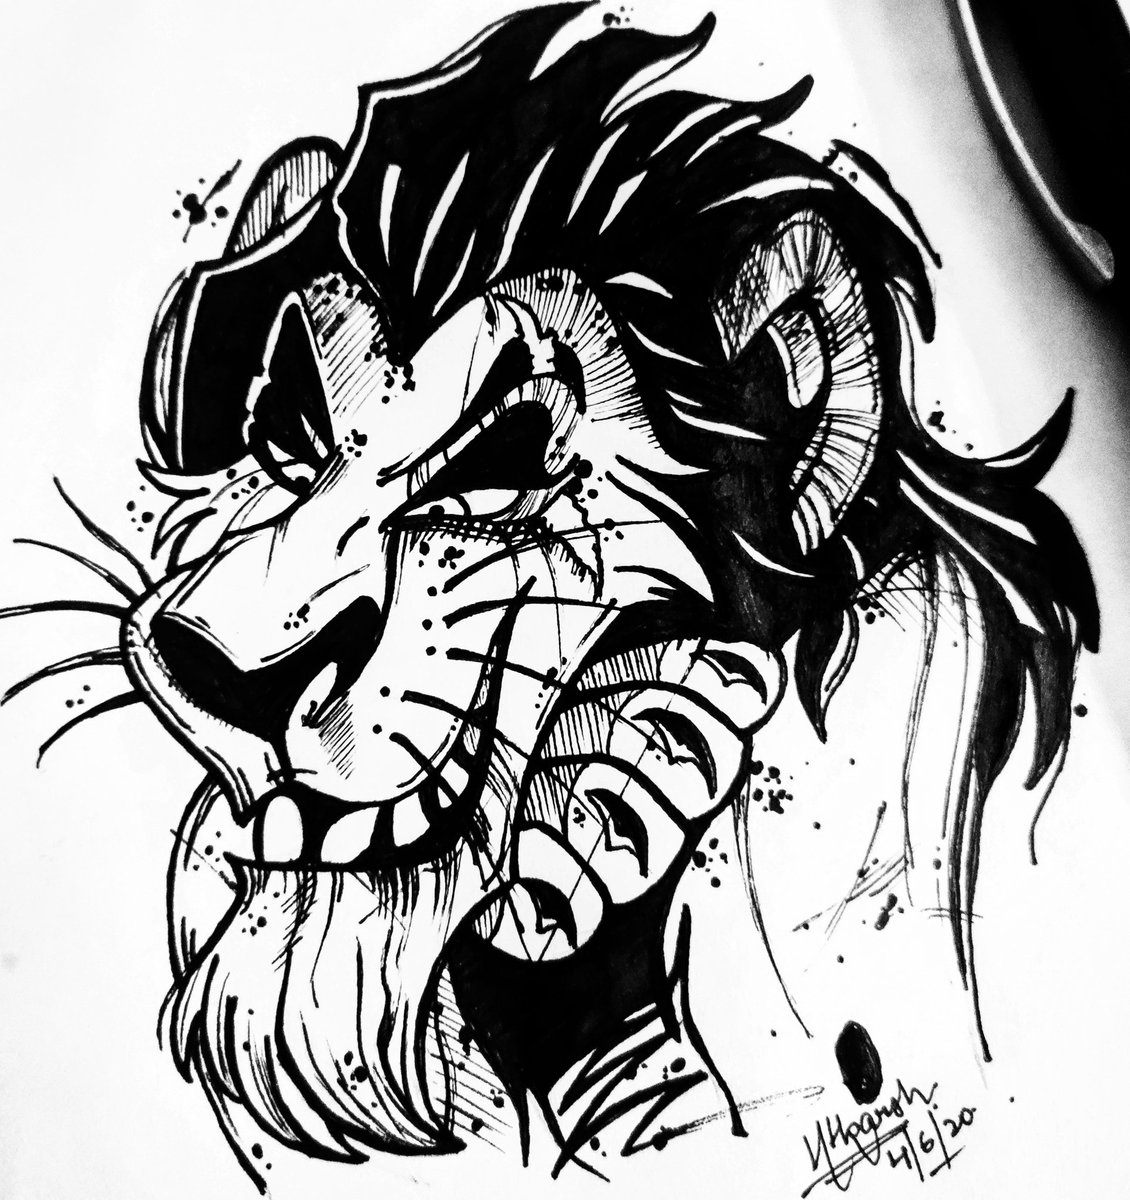 Oh, Simba, you're in trouble again. But this time, Daddy isn't here to save you! And now everyone...knows...why! .  #TheLionKing #INK #Lions #shera #AnimalCrossingNewHorizons #simba #artshare #draw #inking #Black #pen #SaturdayVibes #coronavirus